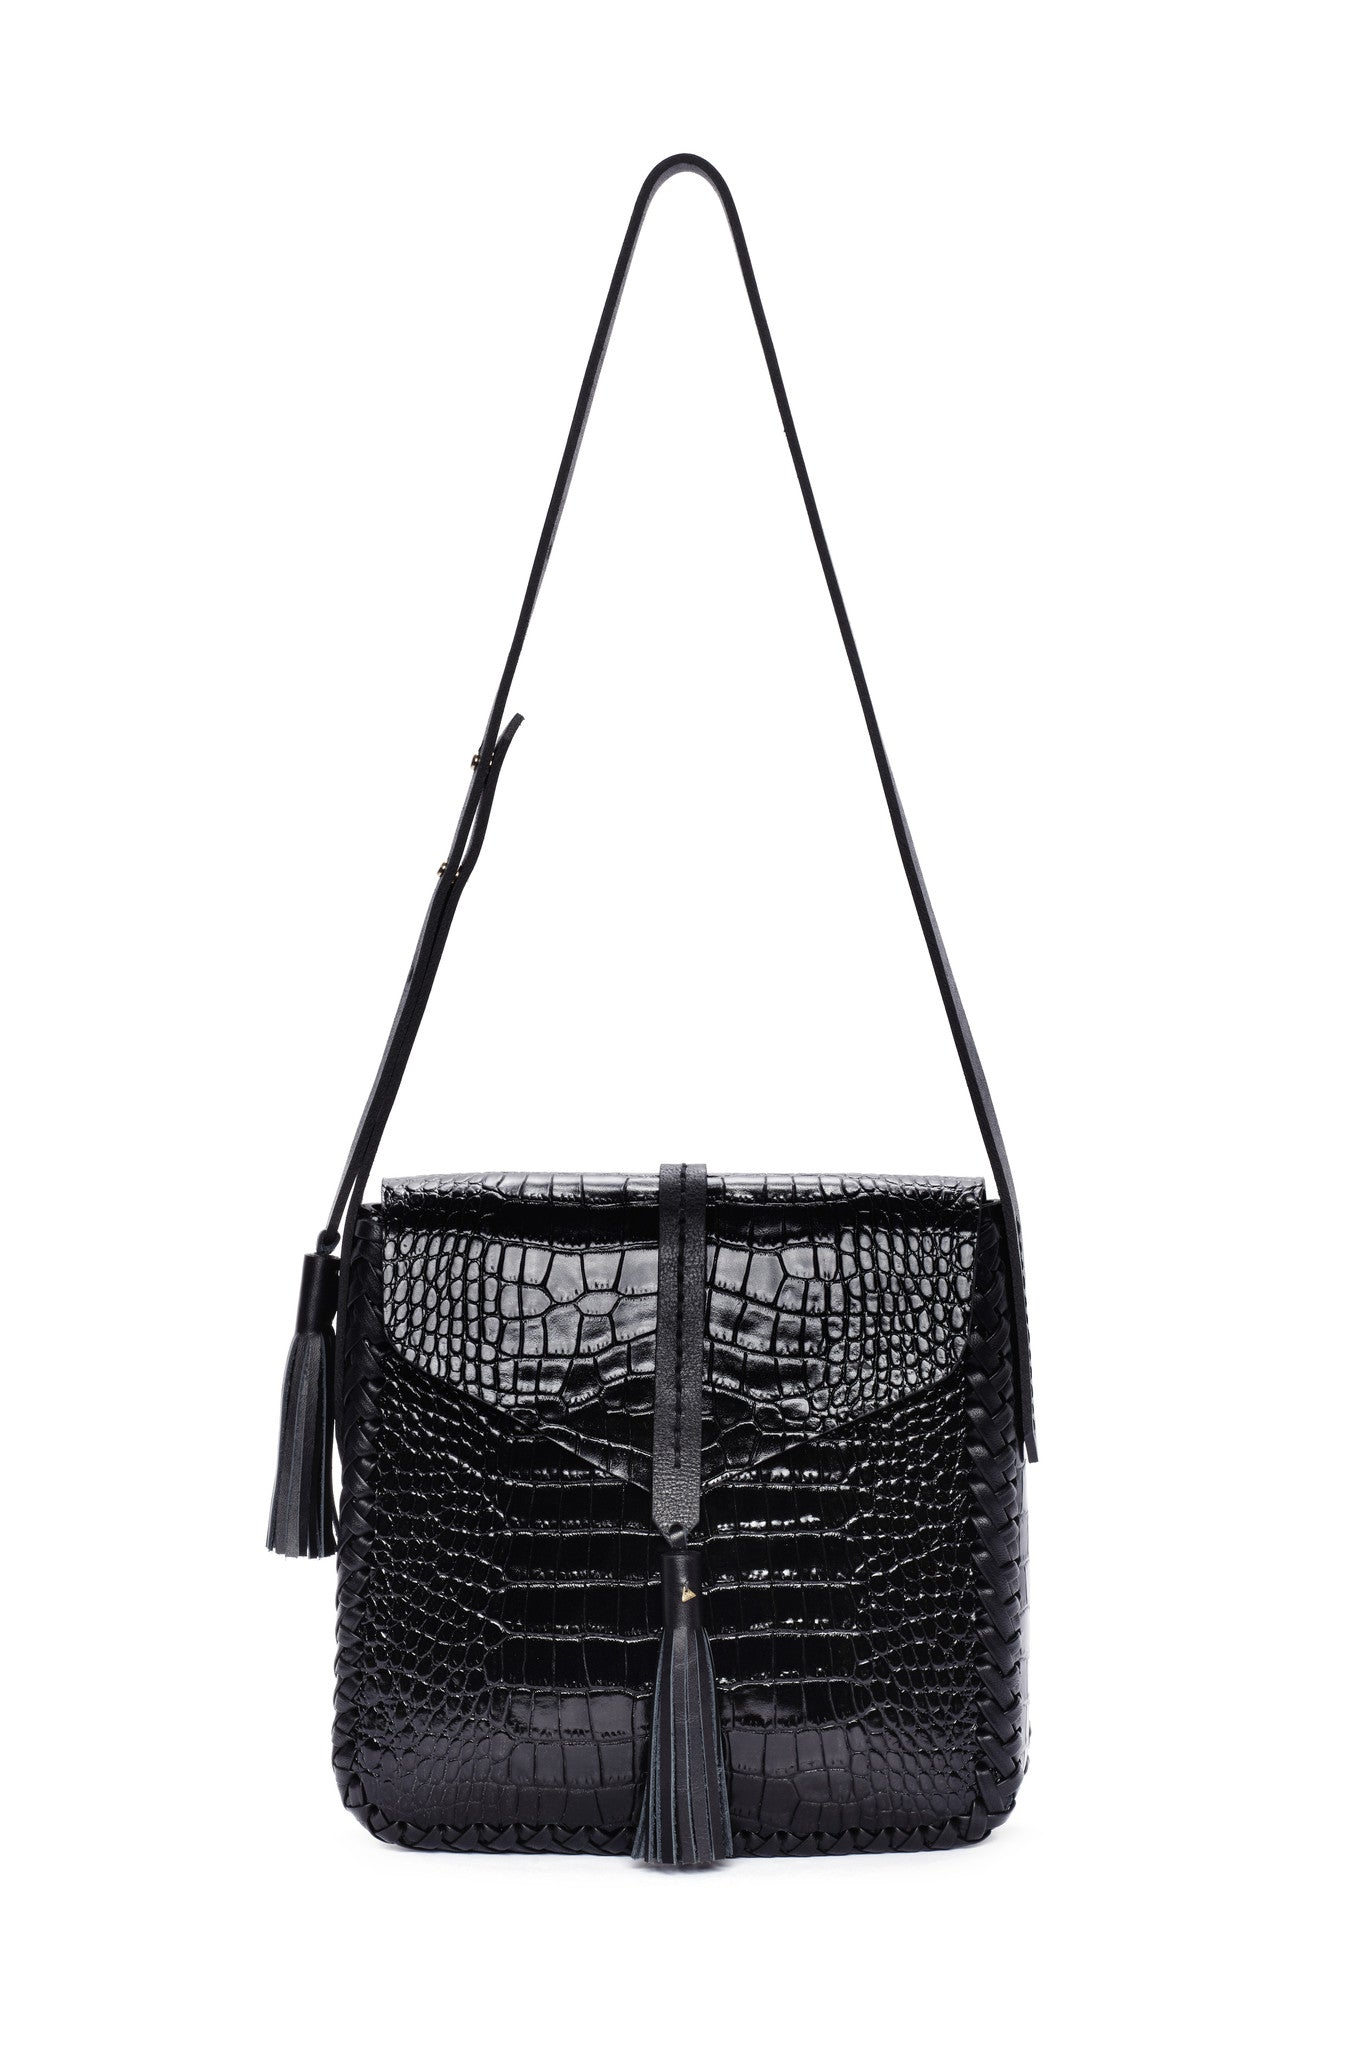 Shiny Reflective Black Embossed Croc Crocodile Alligator Cow Cowhide Soft Lambskin Embossed Basket Weave pattern Leather Classic Saddle Envelope Flap Closure Bag Wendy Nichol Handbag Purse Designer Handmade in NYC New York City Cross Body Adjustable Strap interior pocket Fringe Tassel Tassels Structured Braided Square High Quality Leather